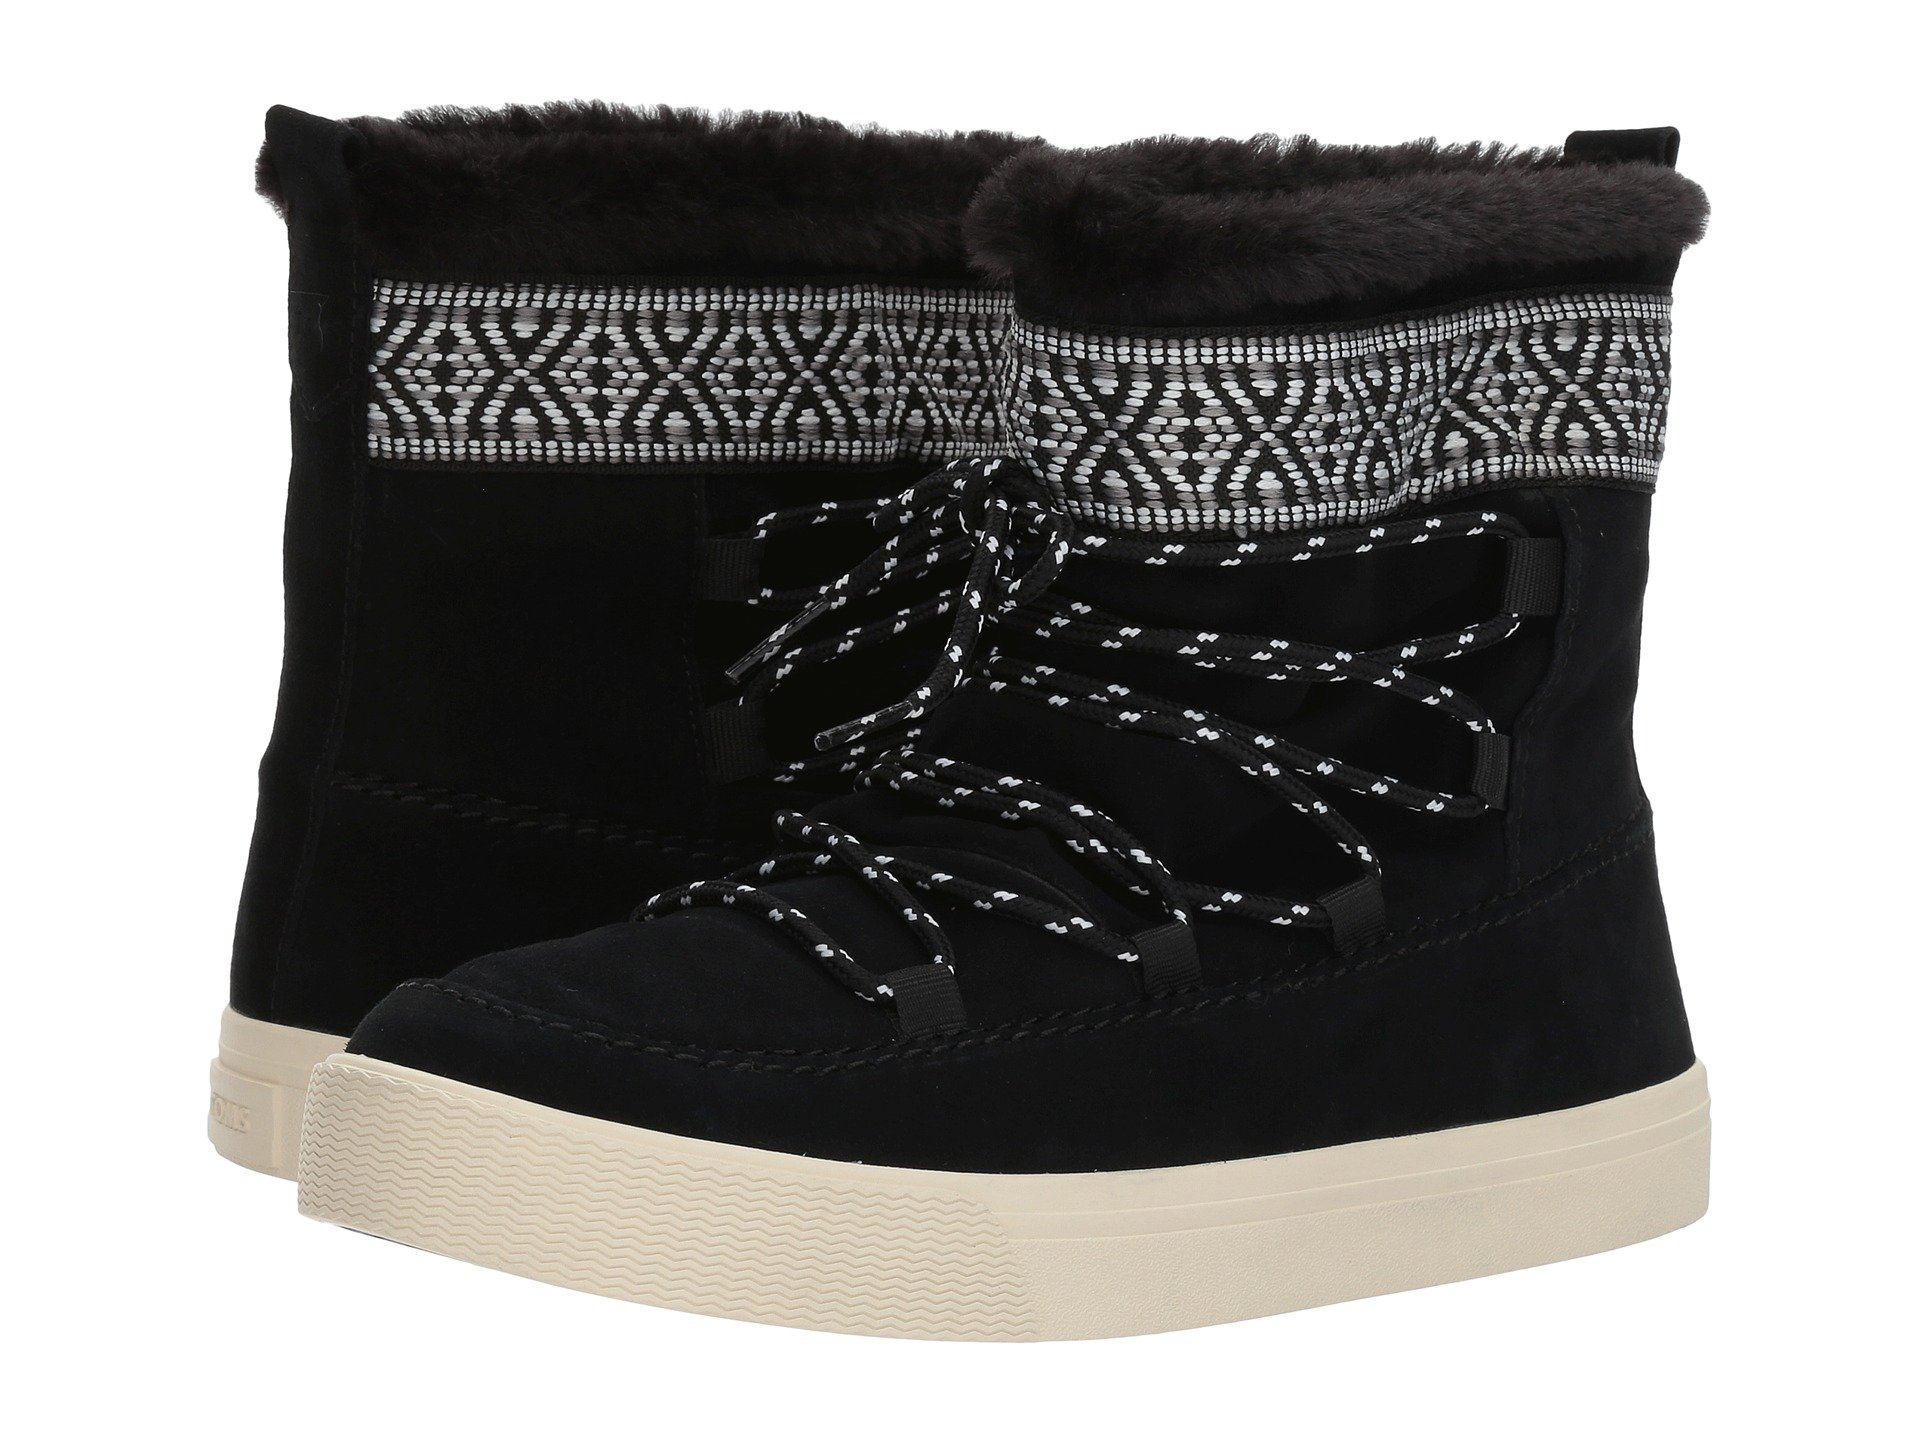 4b5f693bd7e ... water-resistant suede so you can fashionably trek over slushy terrain.  Style Name  Toms Alpine Boot (Women). Style Number  5433793. Available in  stores.